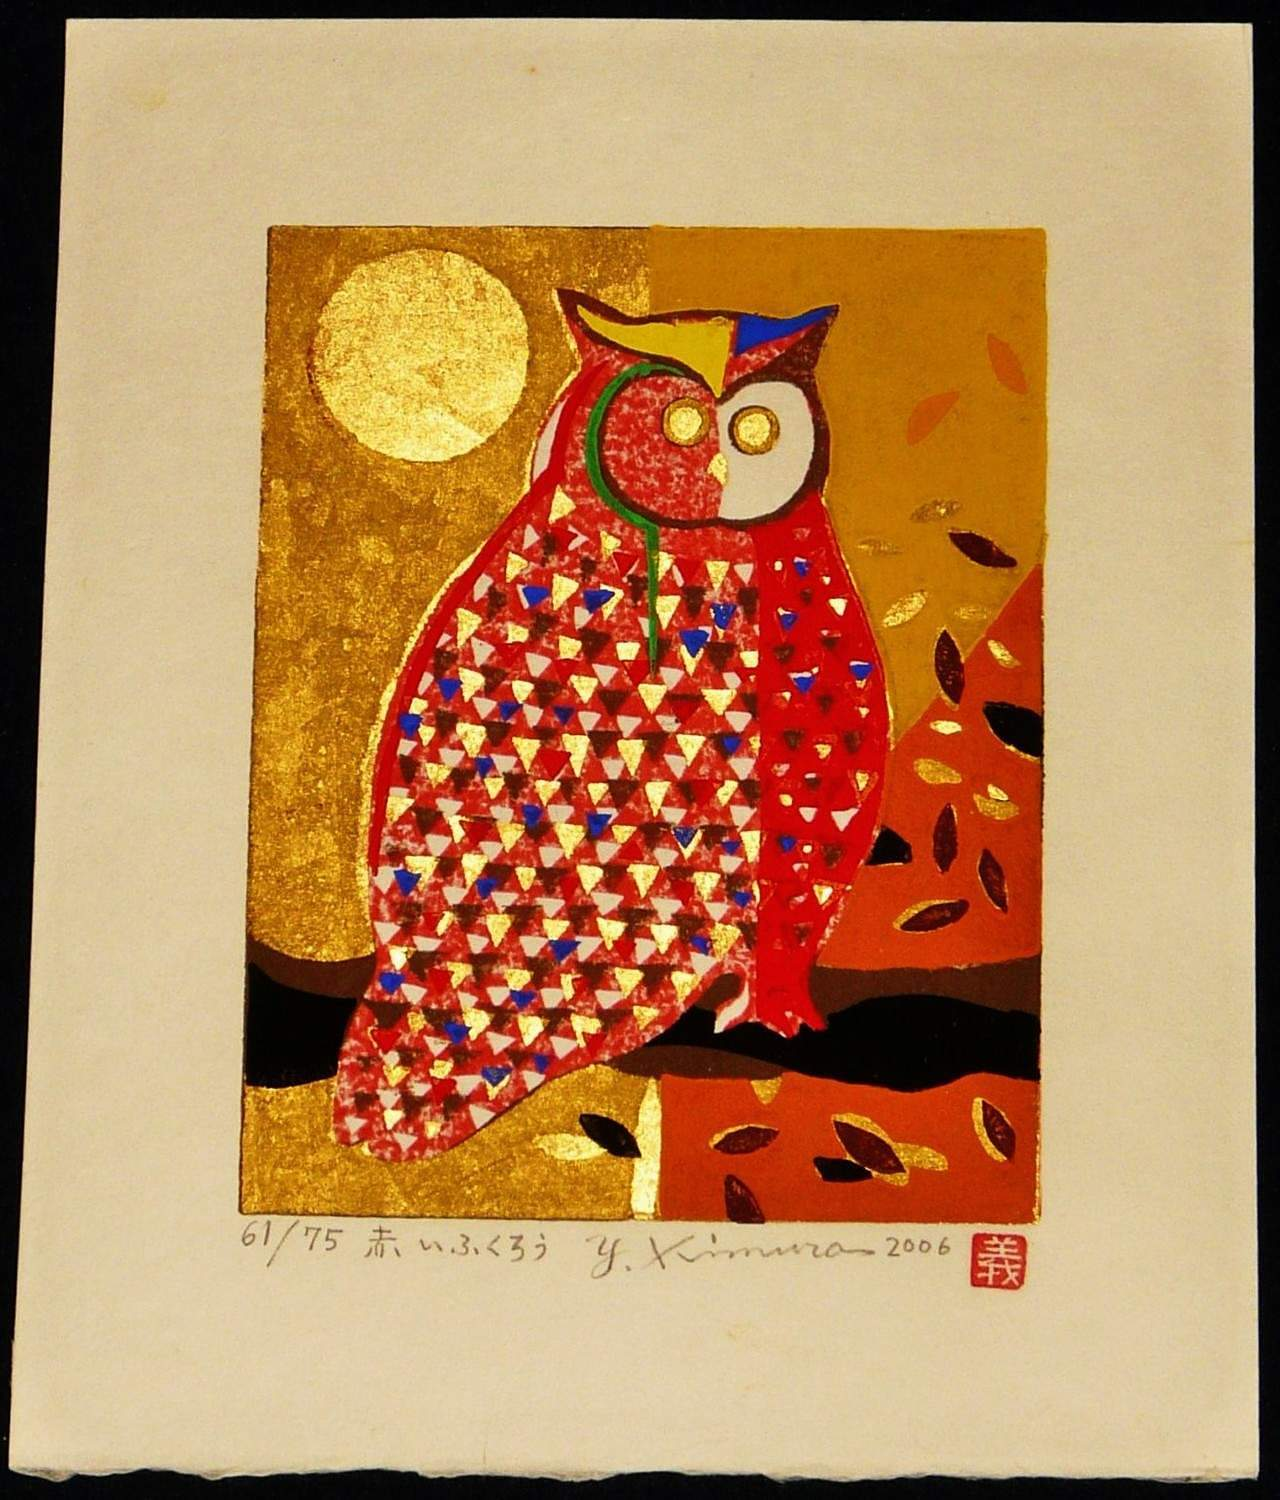 YOSHIHARU KIMURA: #P3644 A RED OWL IN THE MOONLIGHT